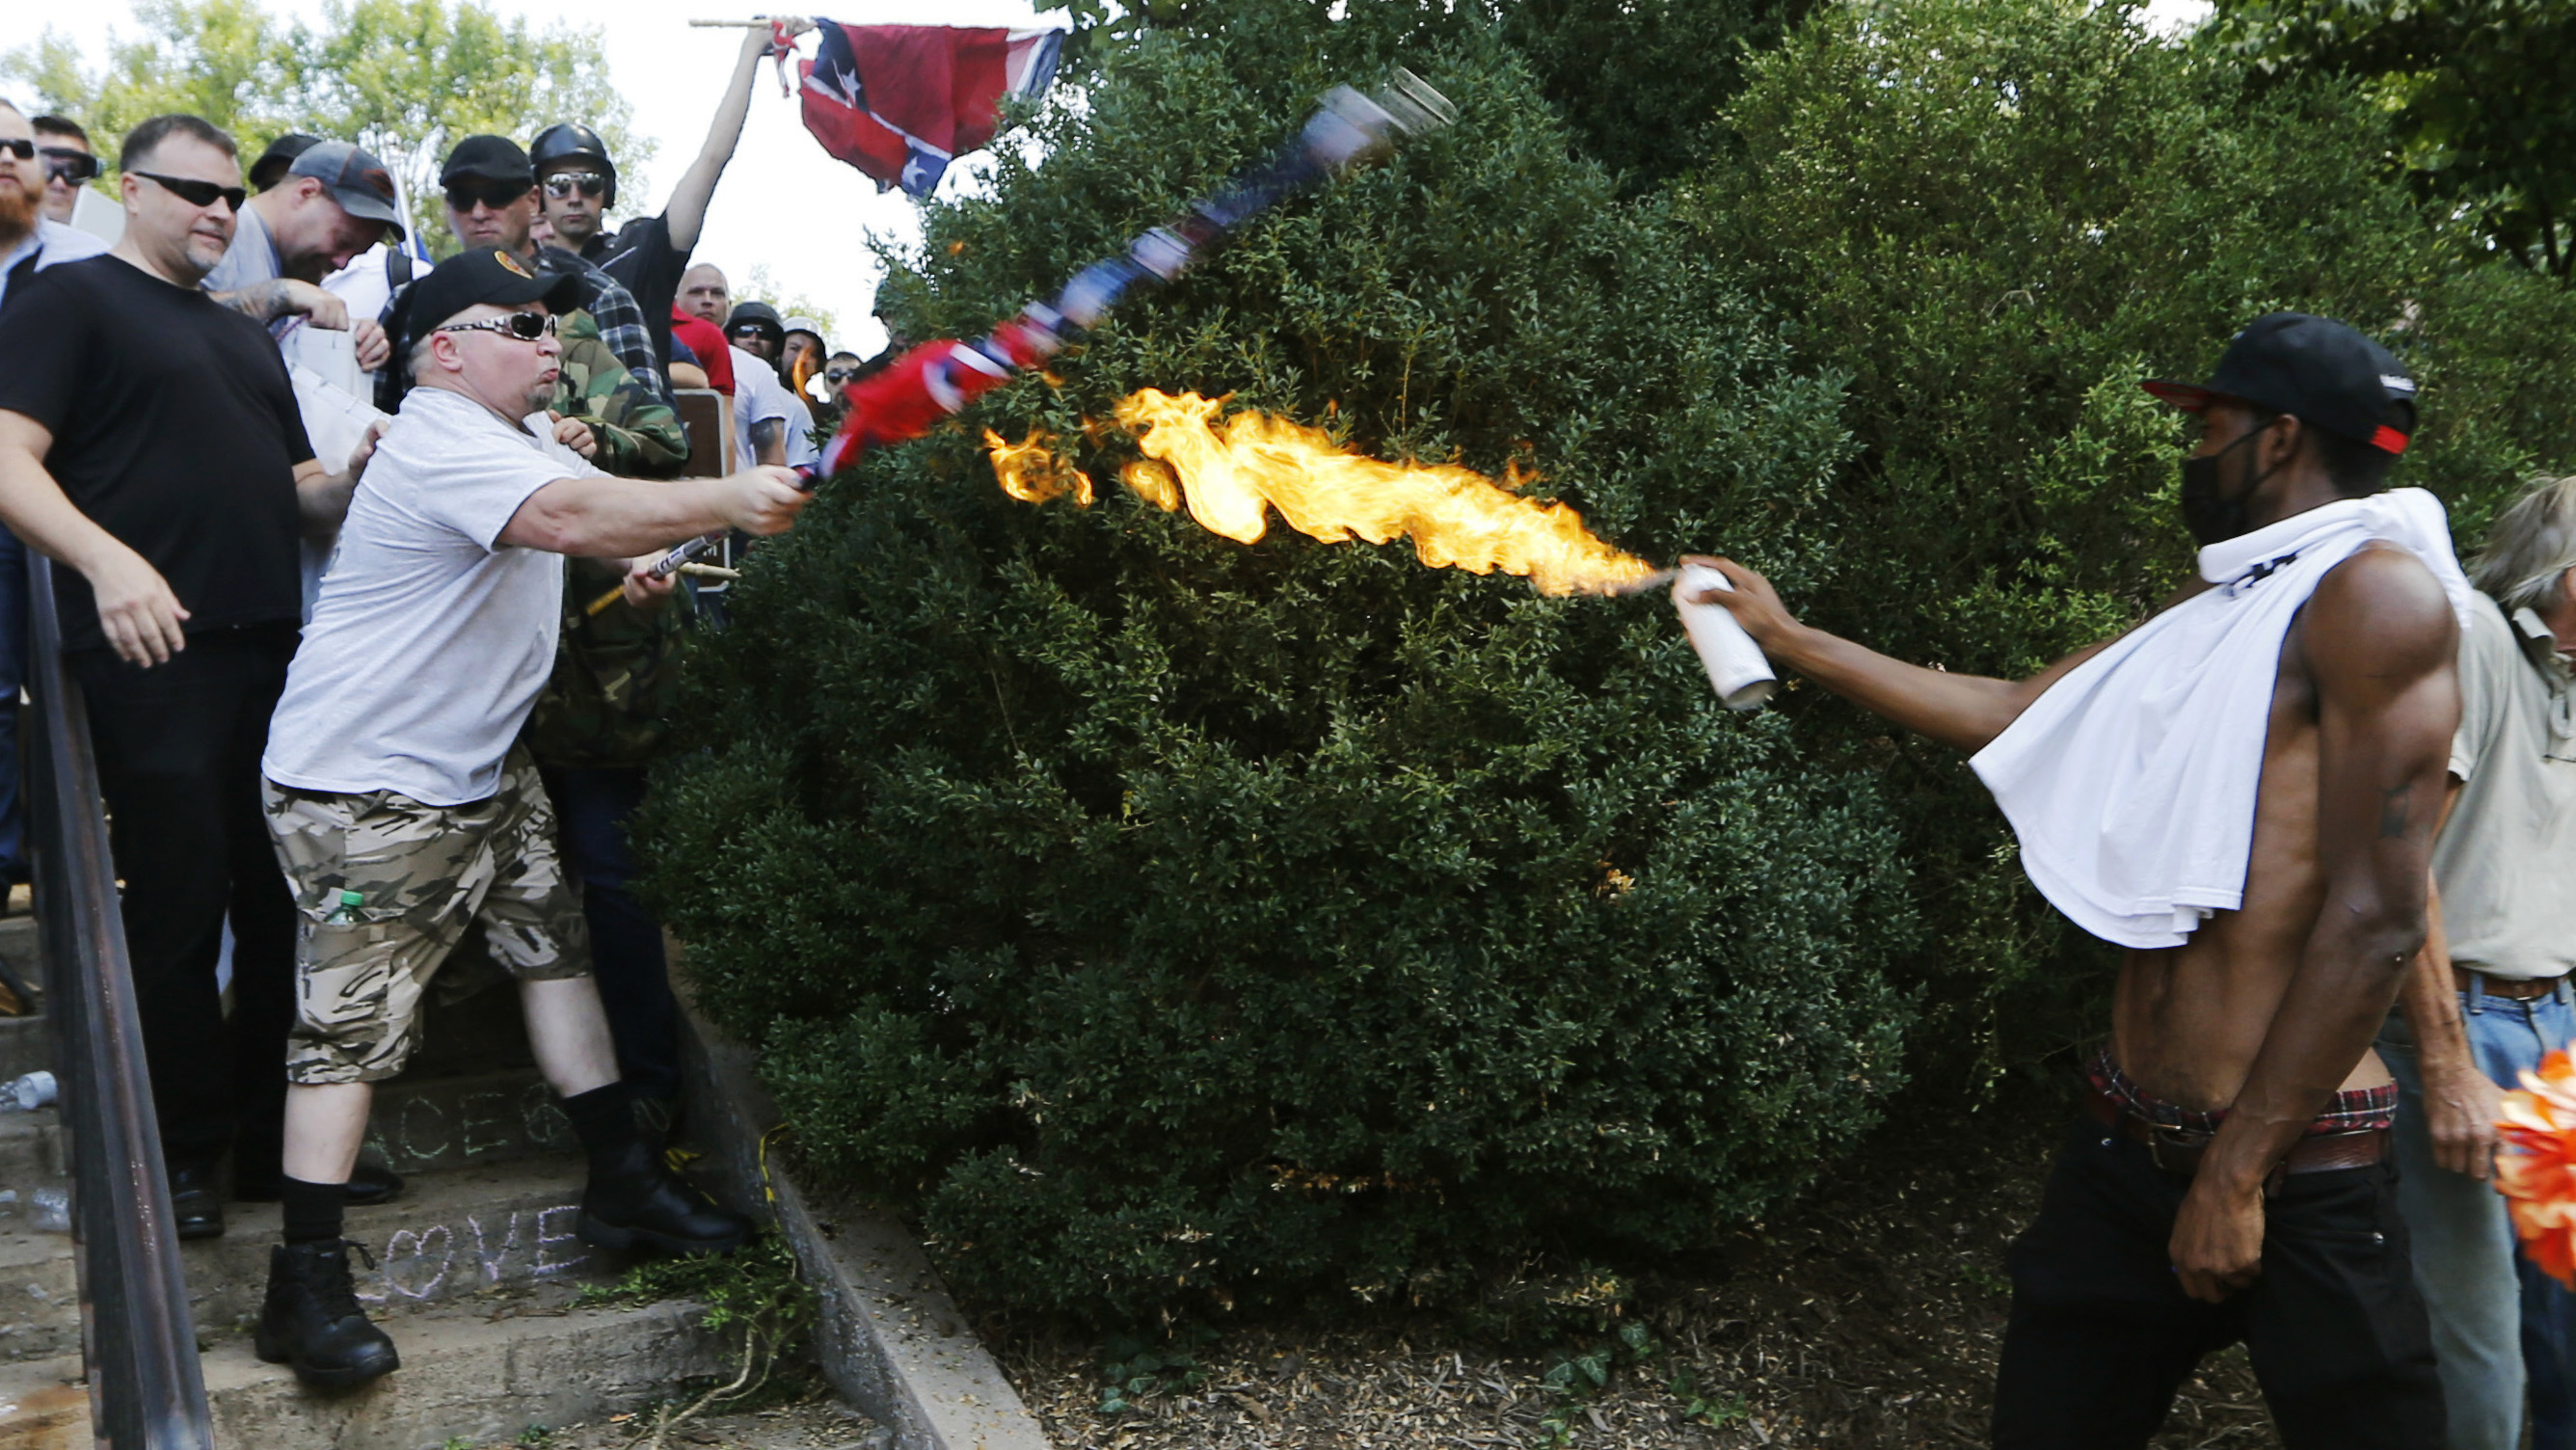 Charlottesville White Nationalist Rally What We Know CNN - A map of us after white supremcists take over